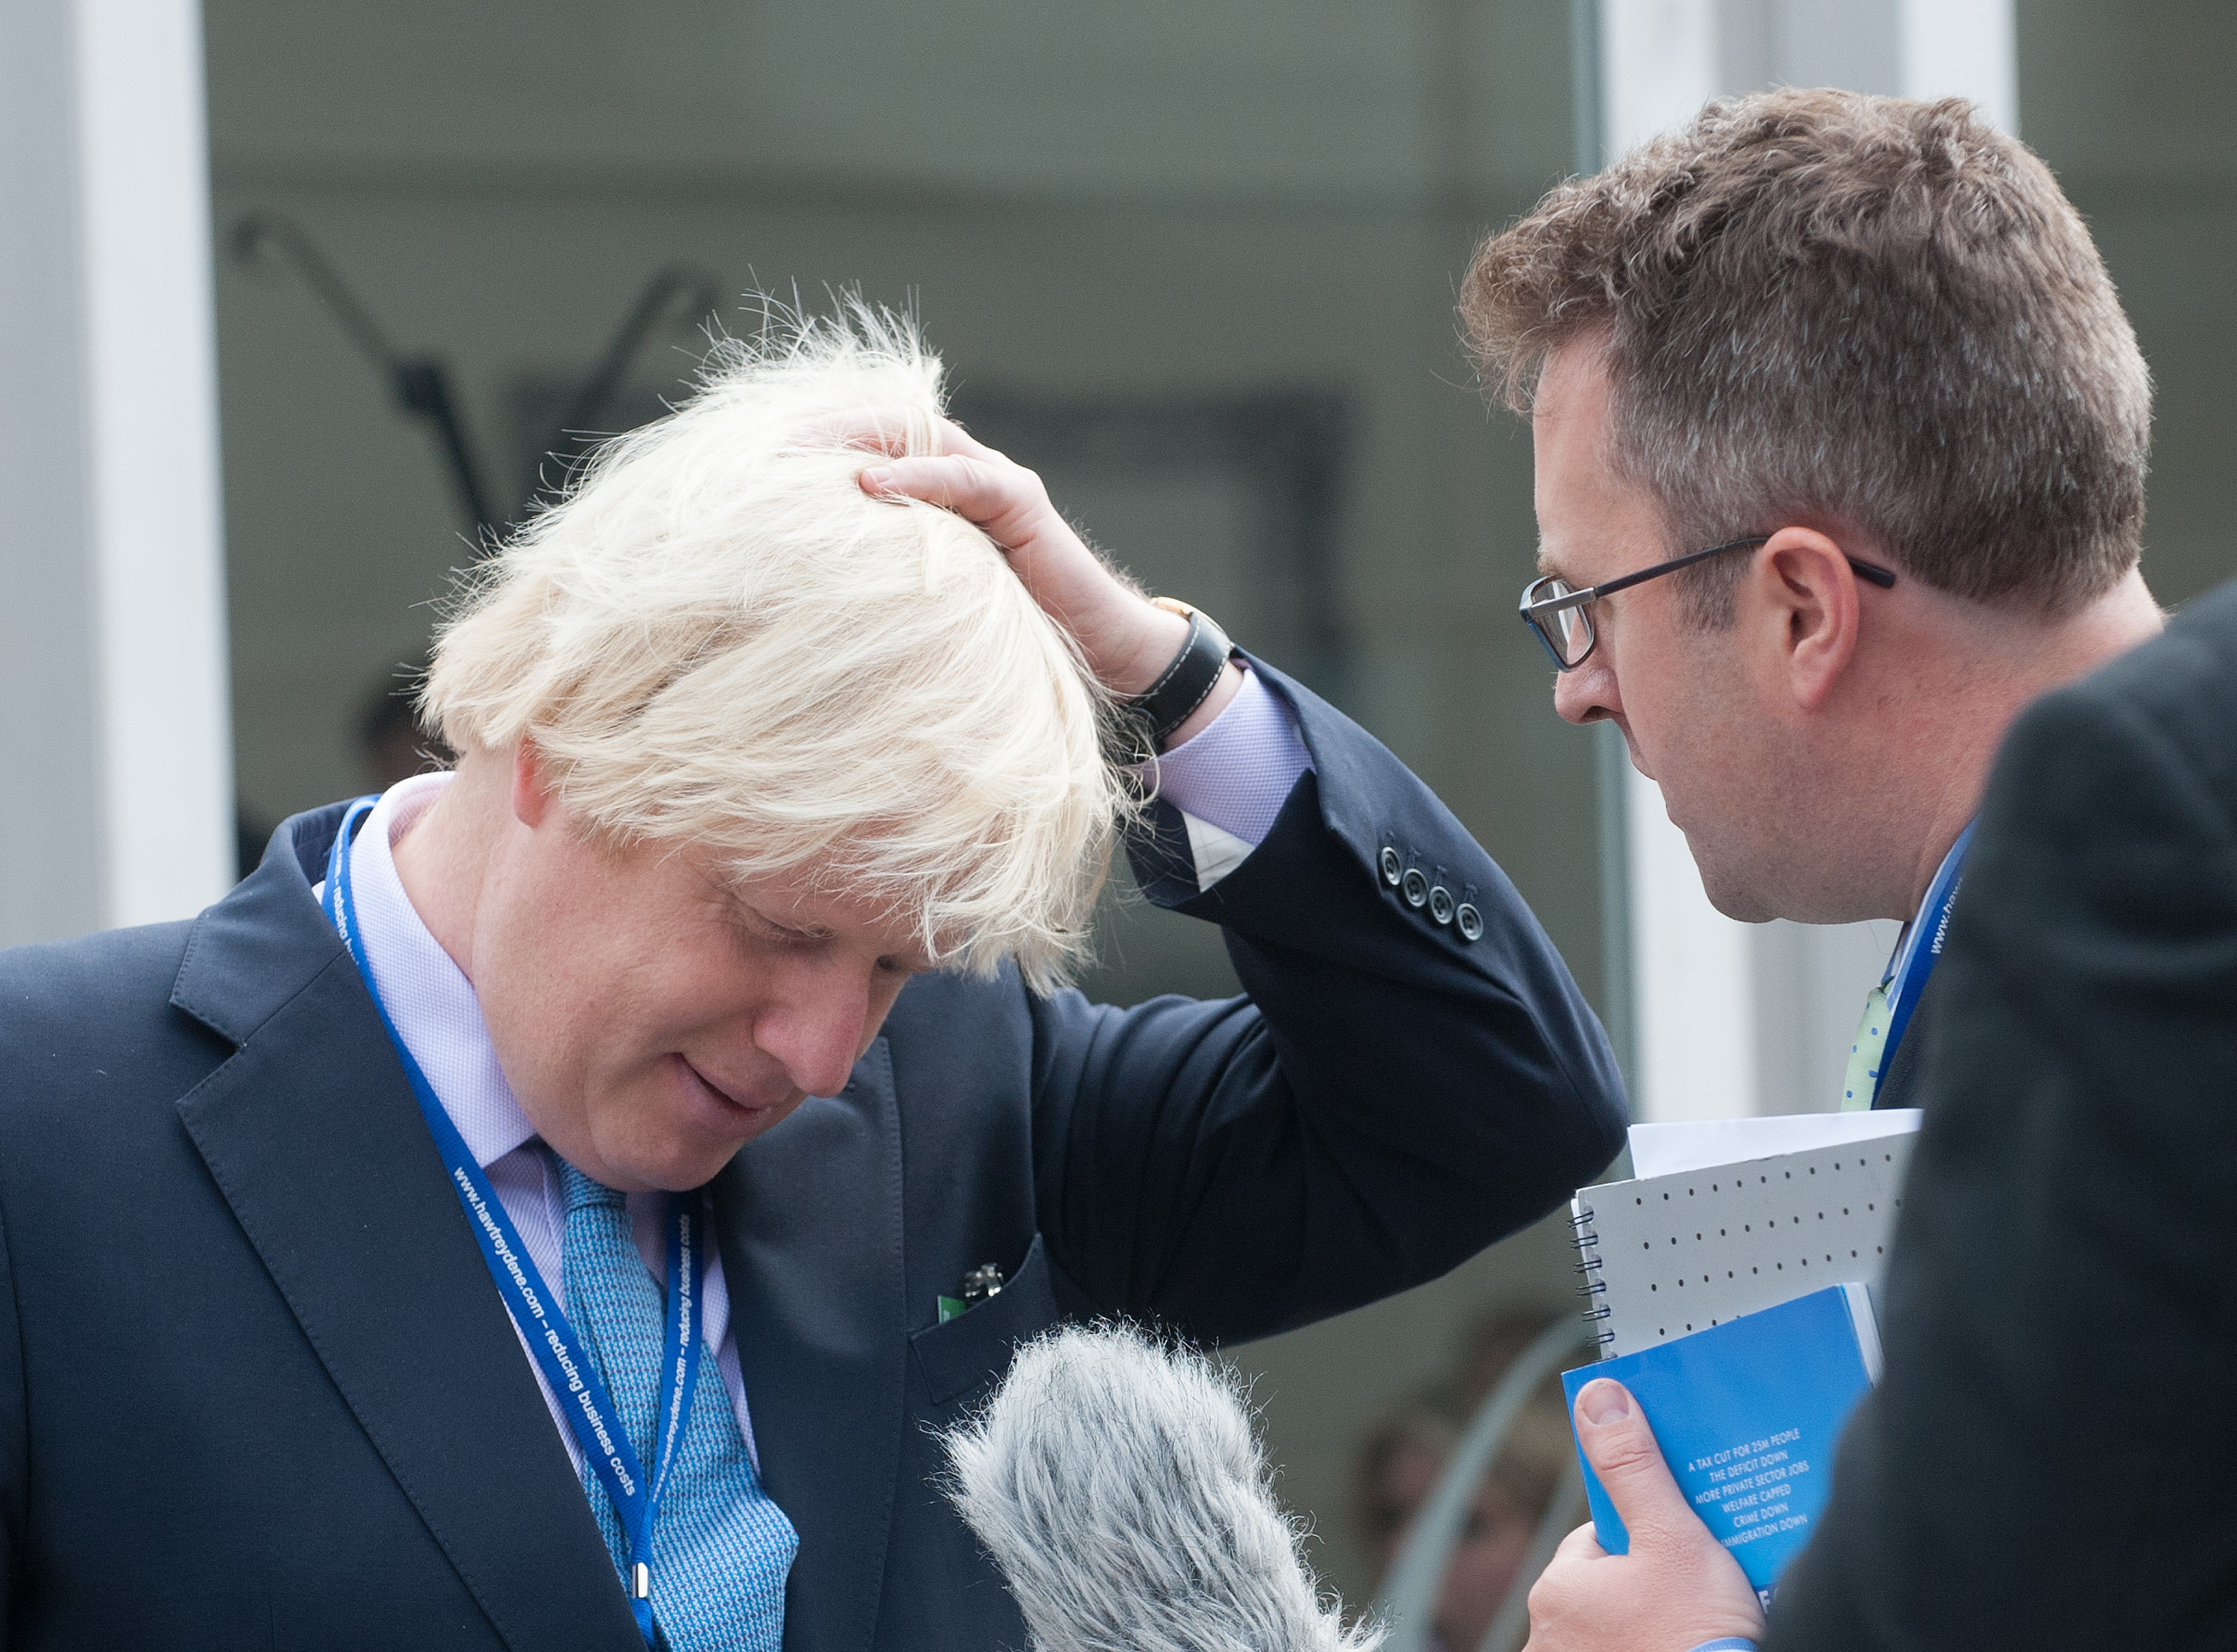 The Mayor of London Boris Johnson gives an interview outside Manchester Central during the Conservative Conference 2013.